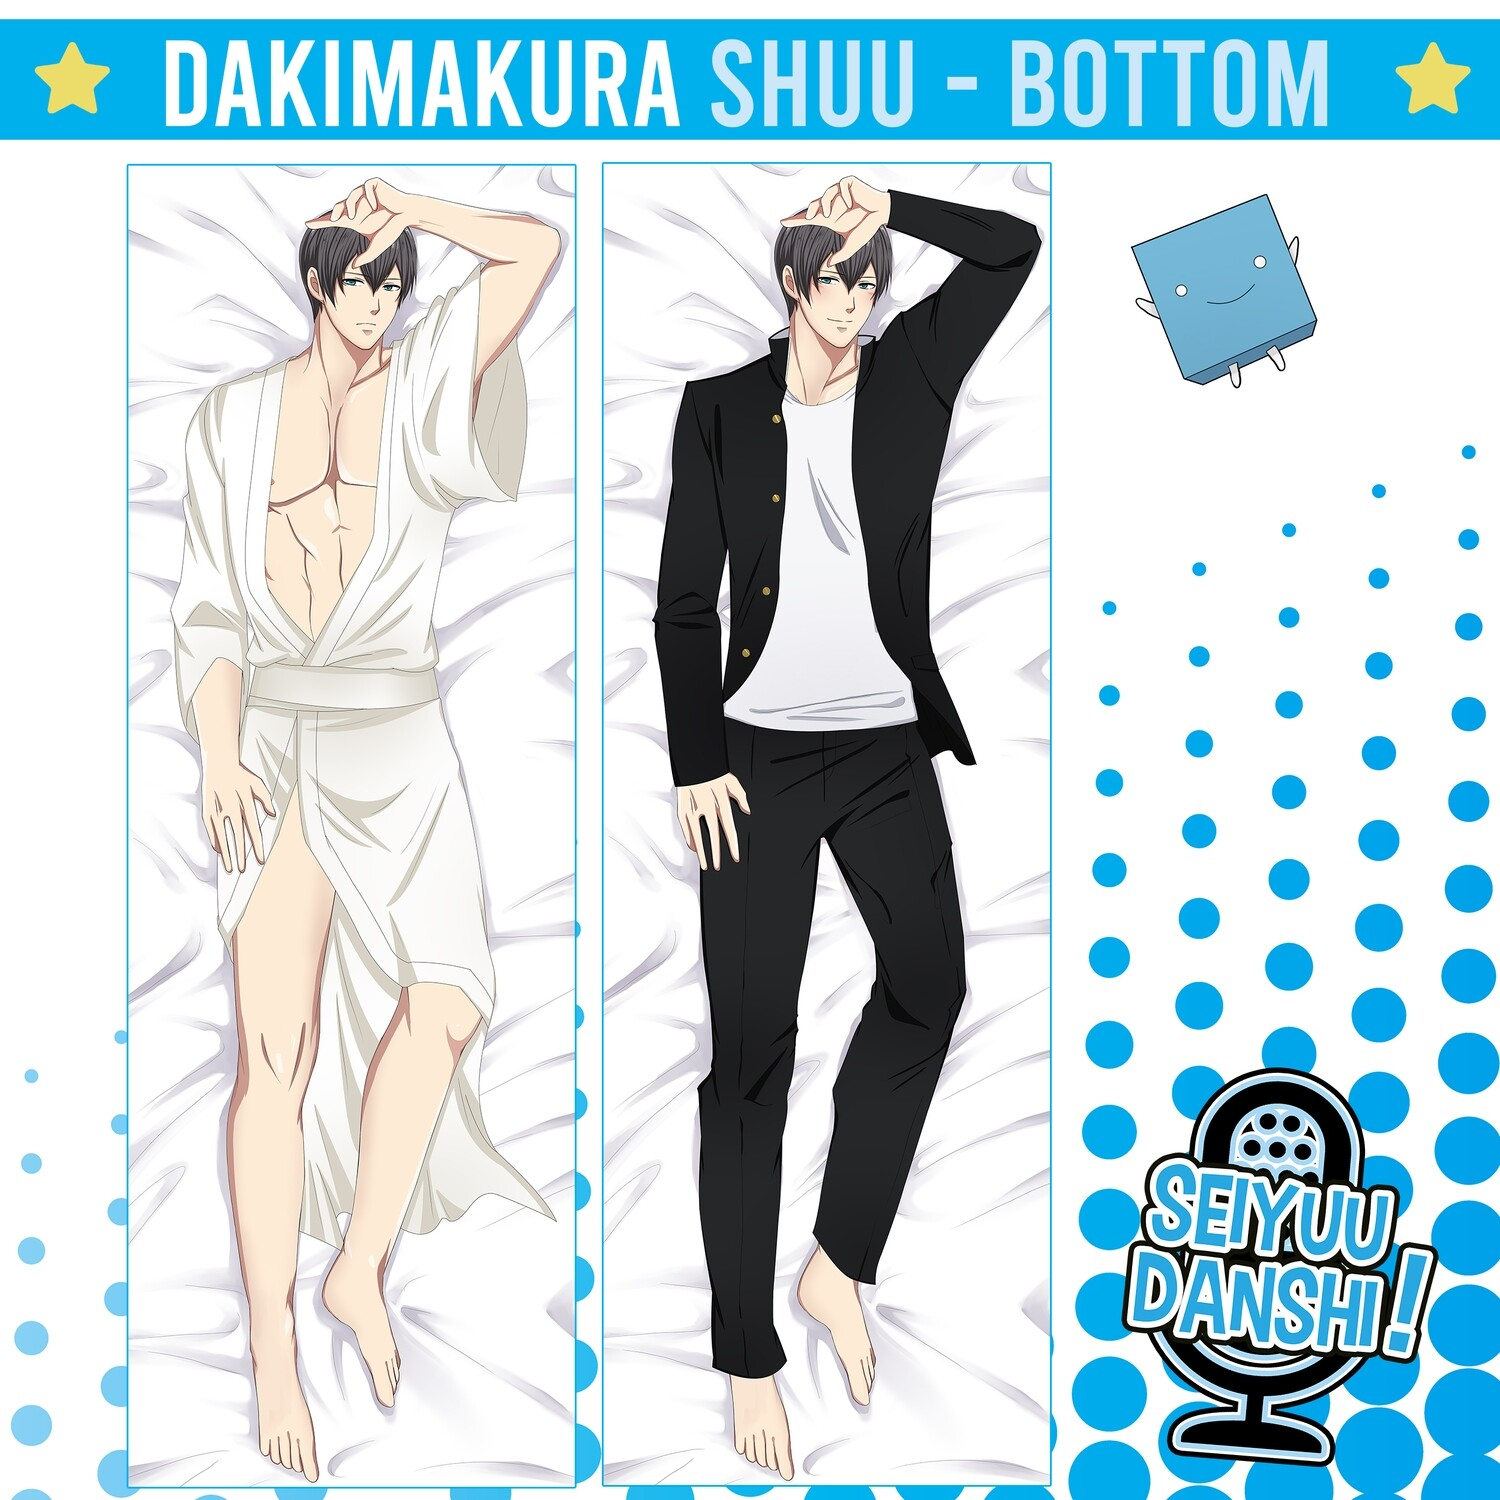 Dakimakura Shuu - Bottom